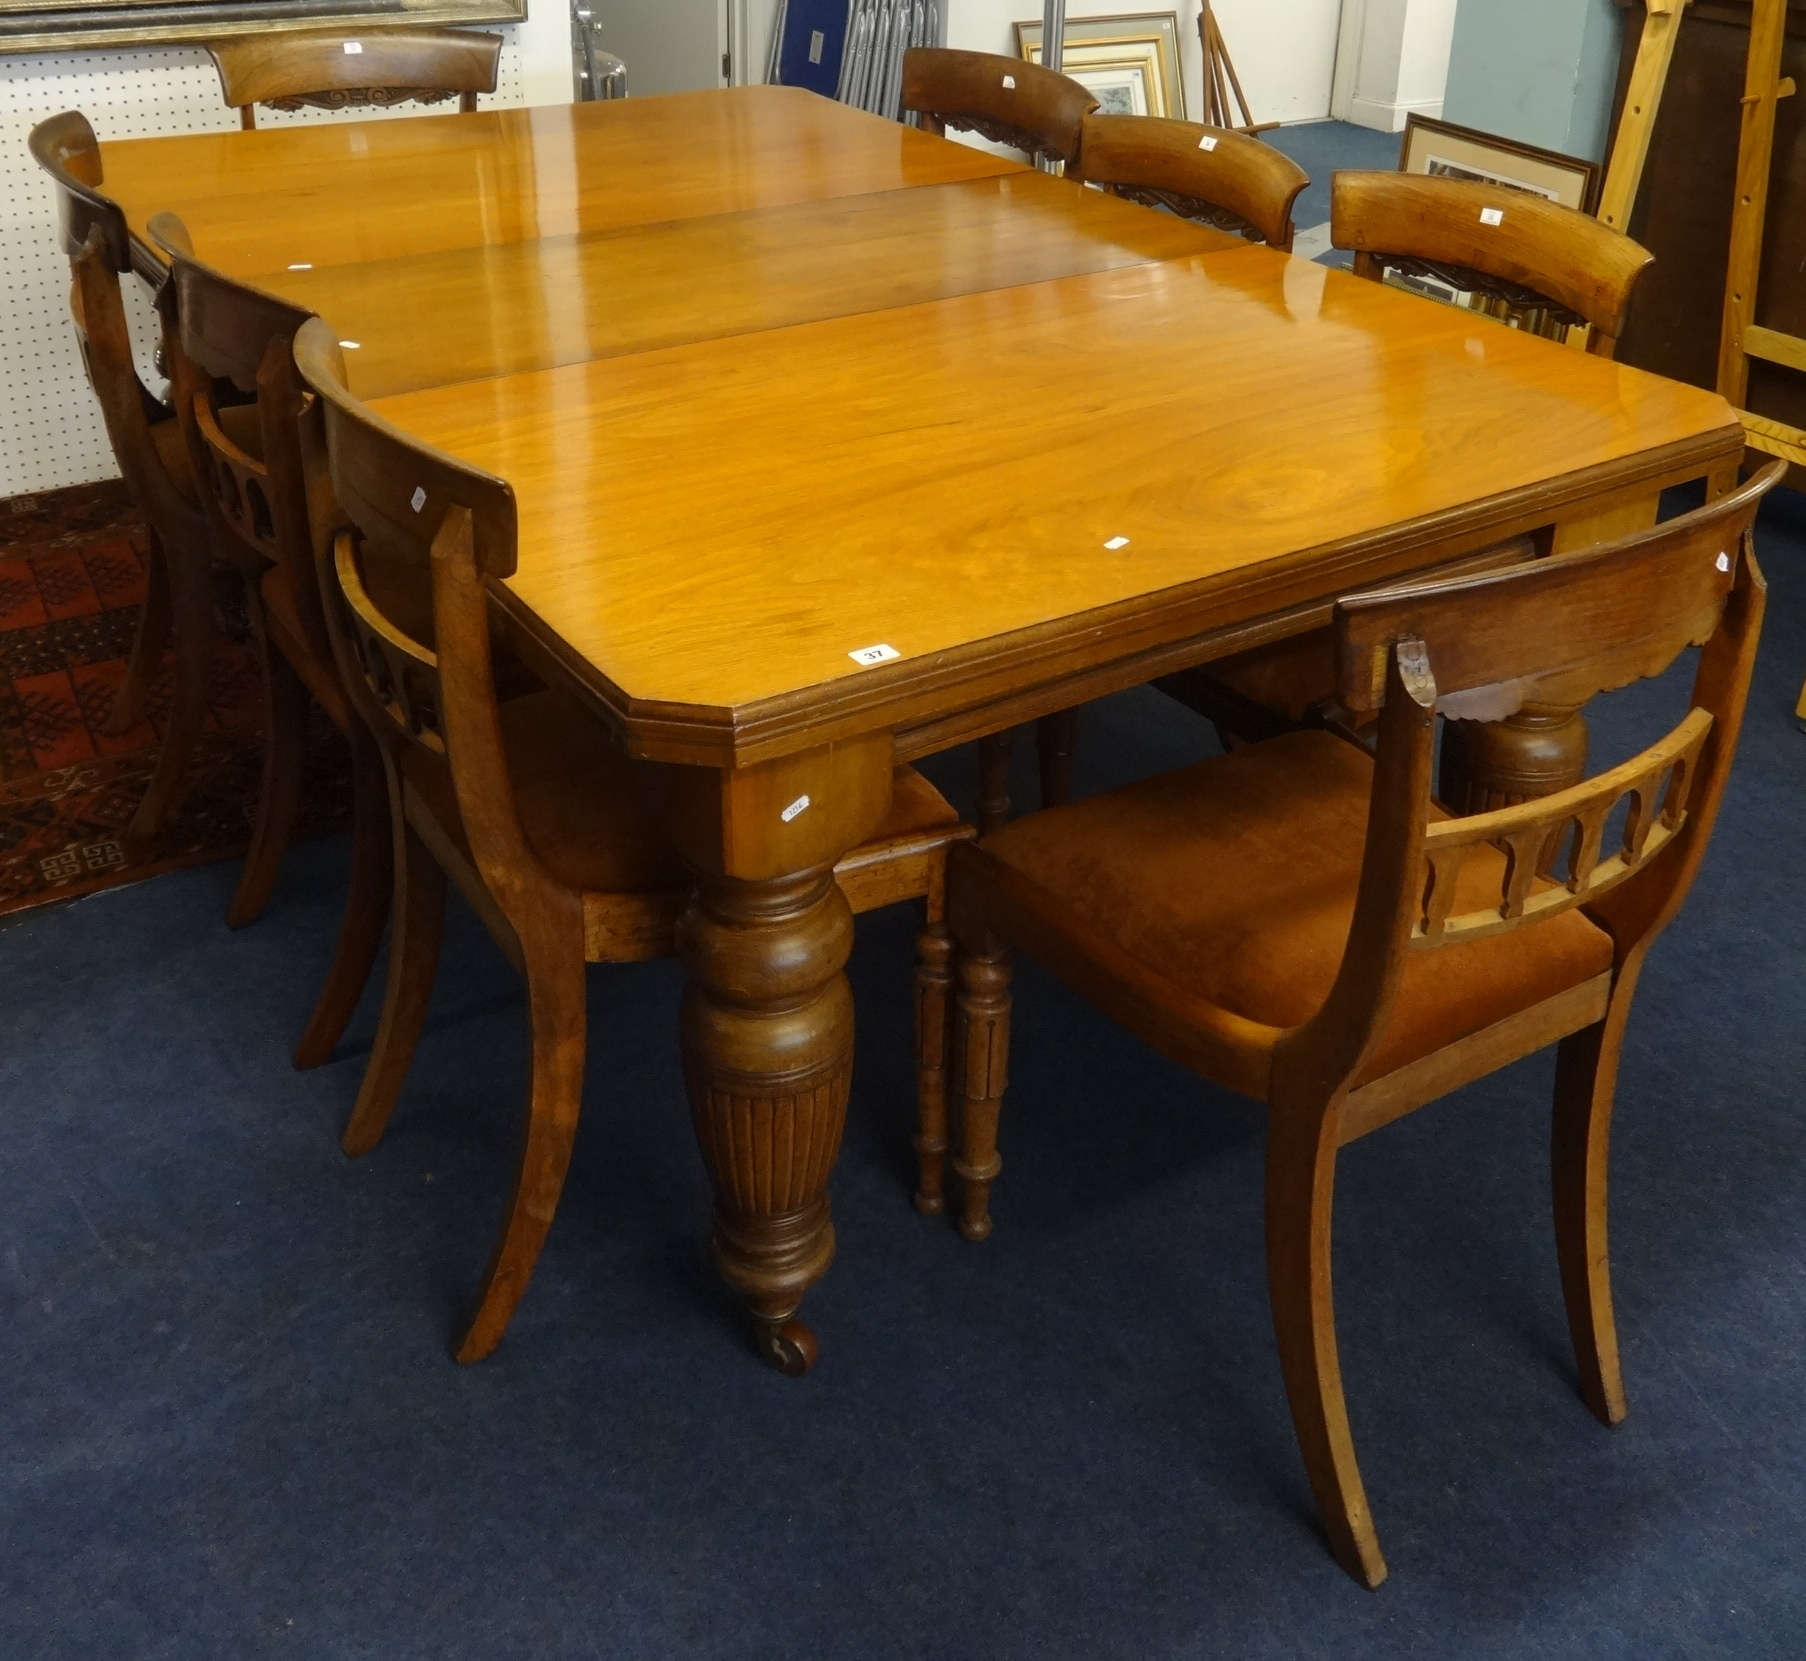 Lot 037 - Early 20th Century mahogany dining table, with wind out mechanism and extra leaf on heavy turned